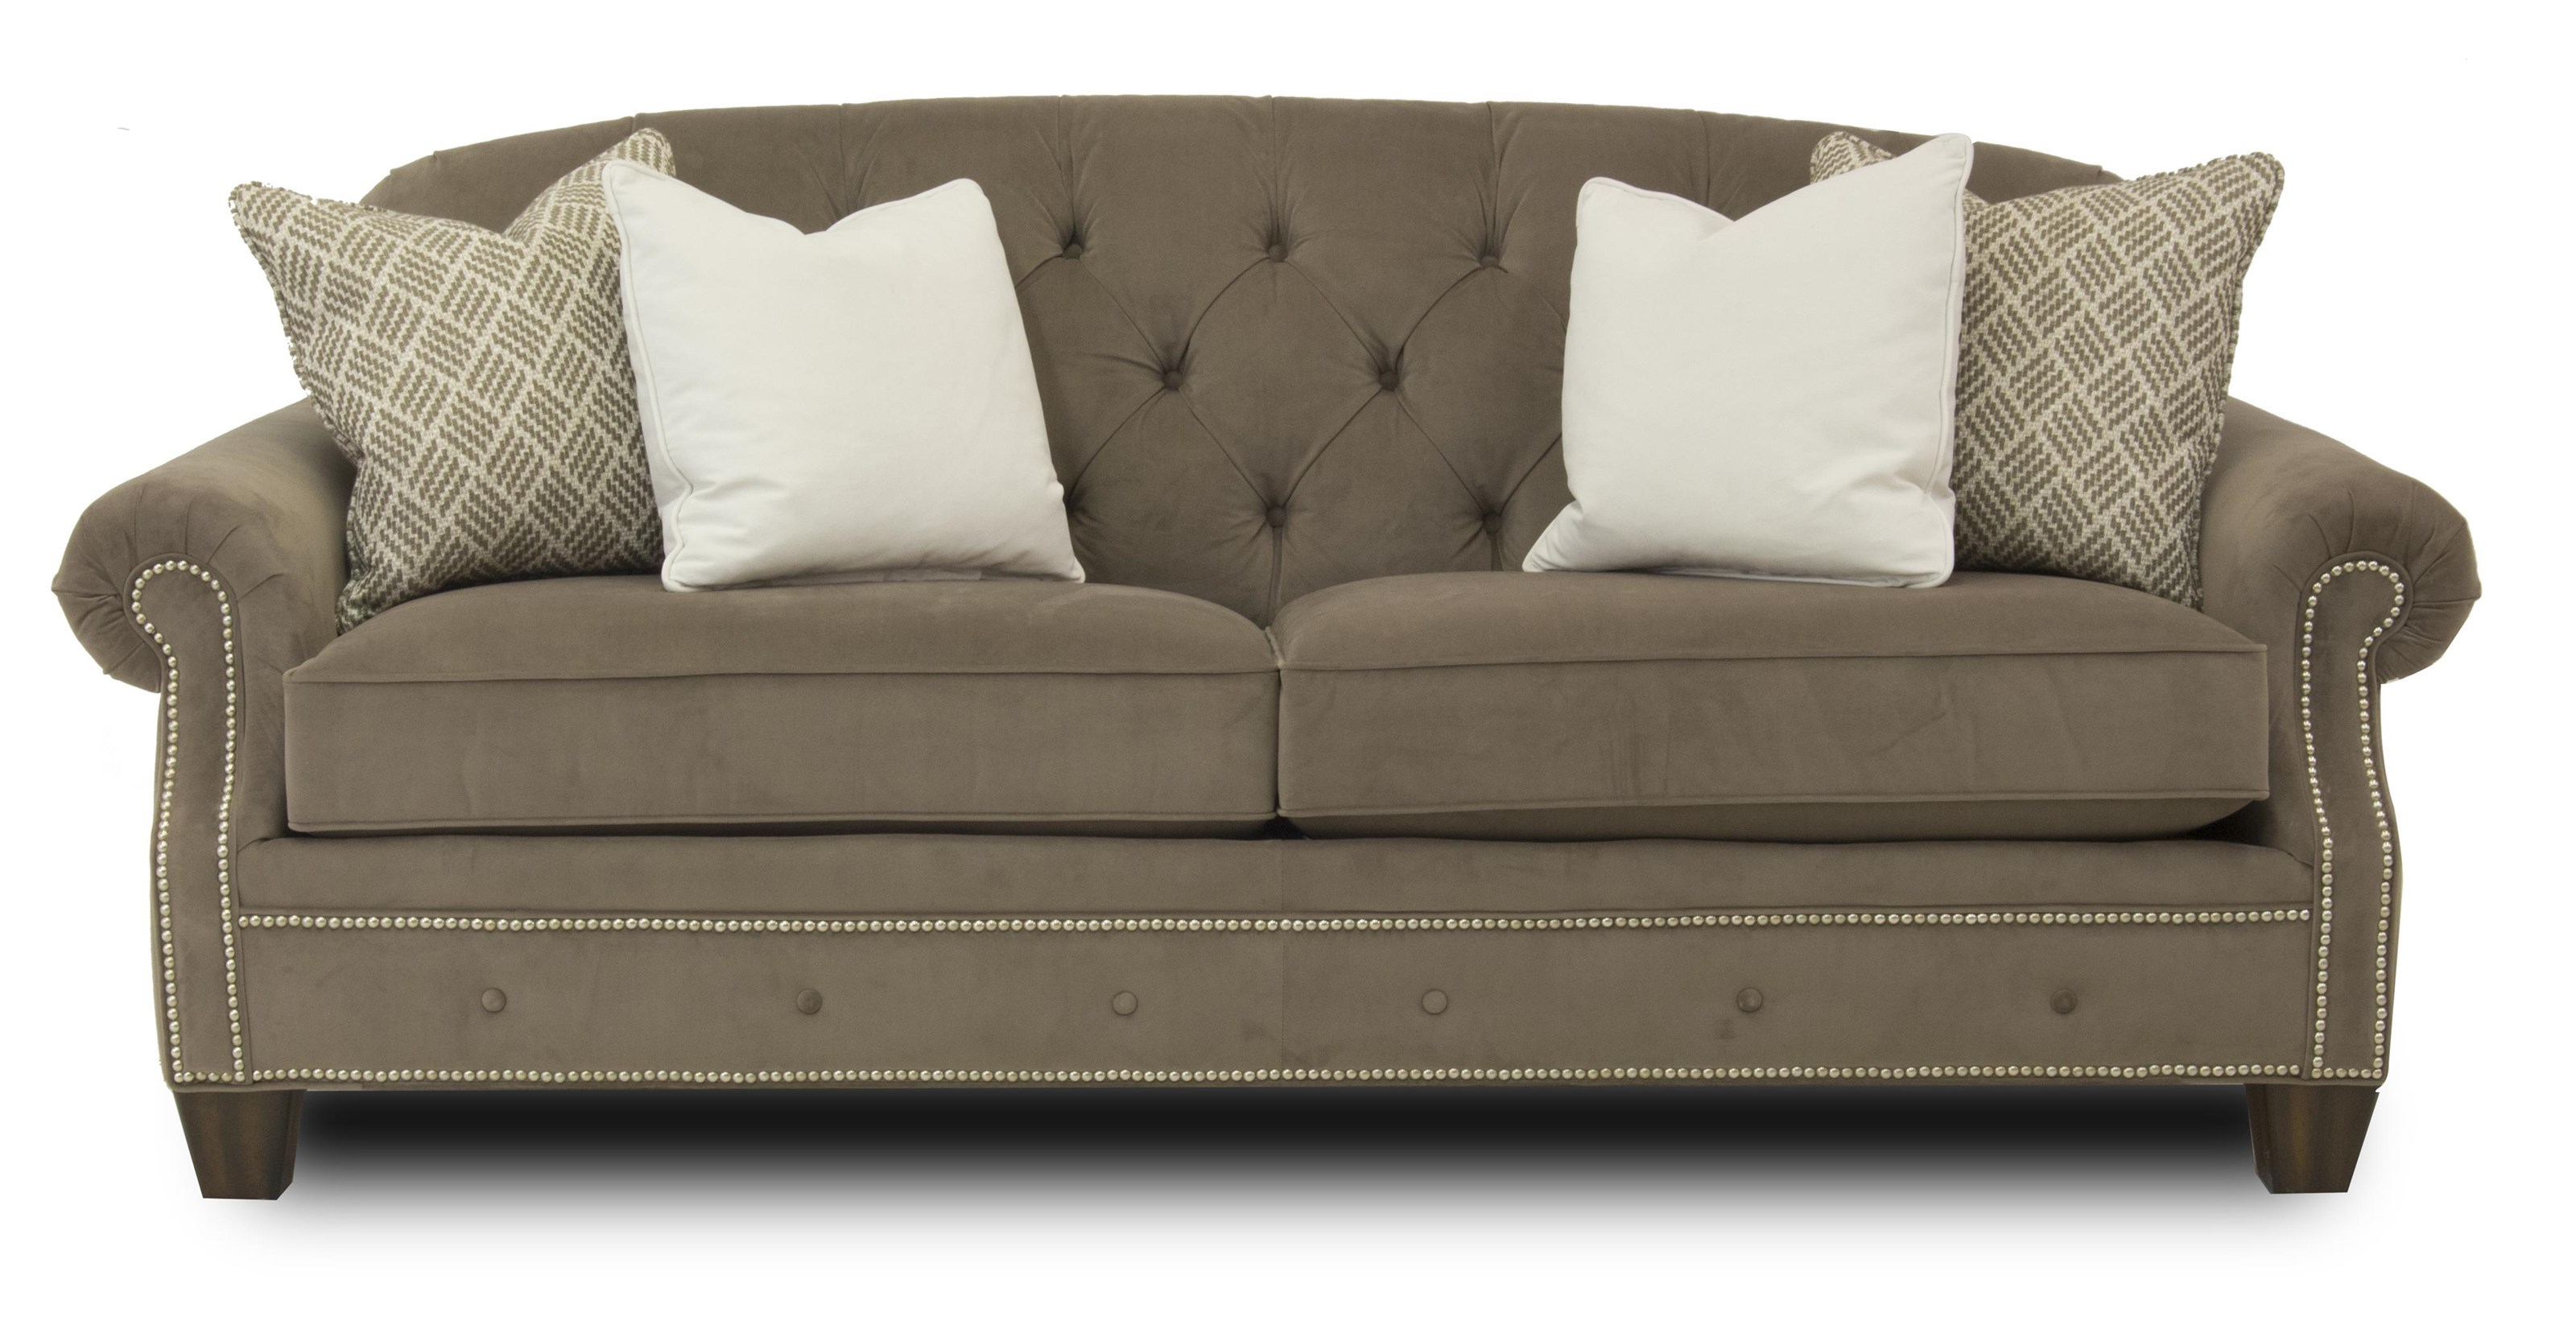 Sofa S Champion Transitional Button Tufted Sofa With Rolled Arms And Nailheads By Flexsteel At Ruby Gordon Home